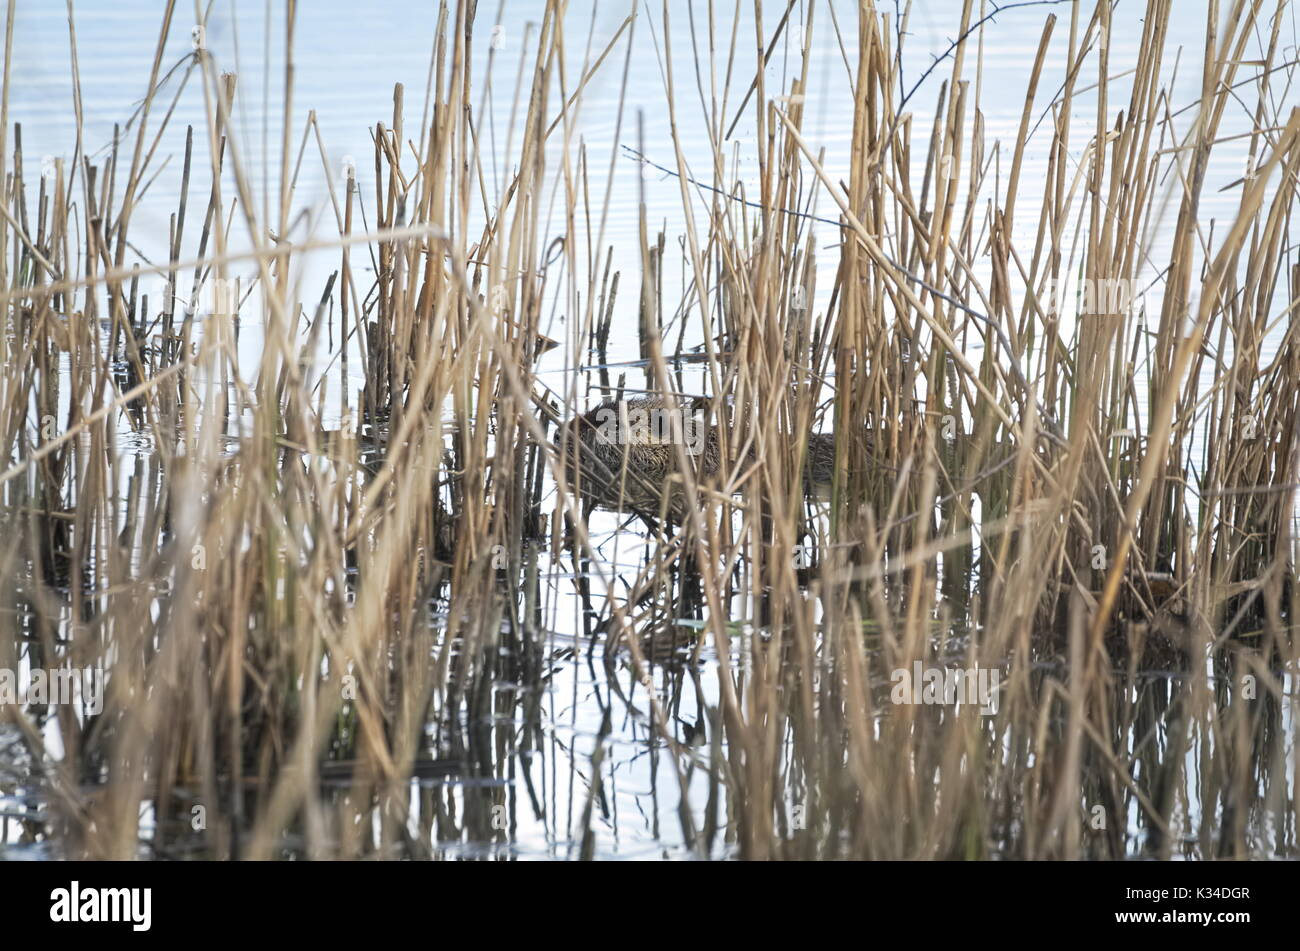 Coypu Animal Swimming in the Water between Dry Reeds Stock Photo